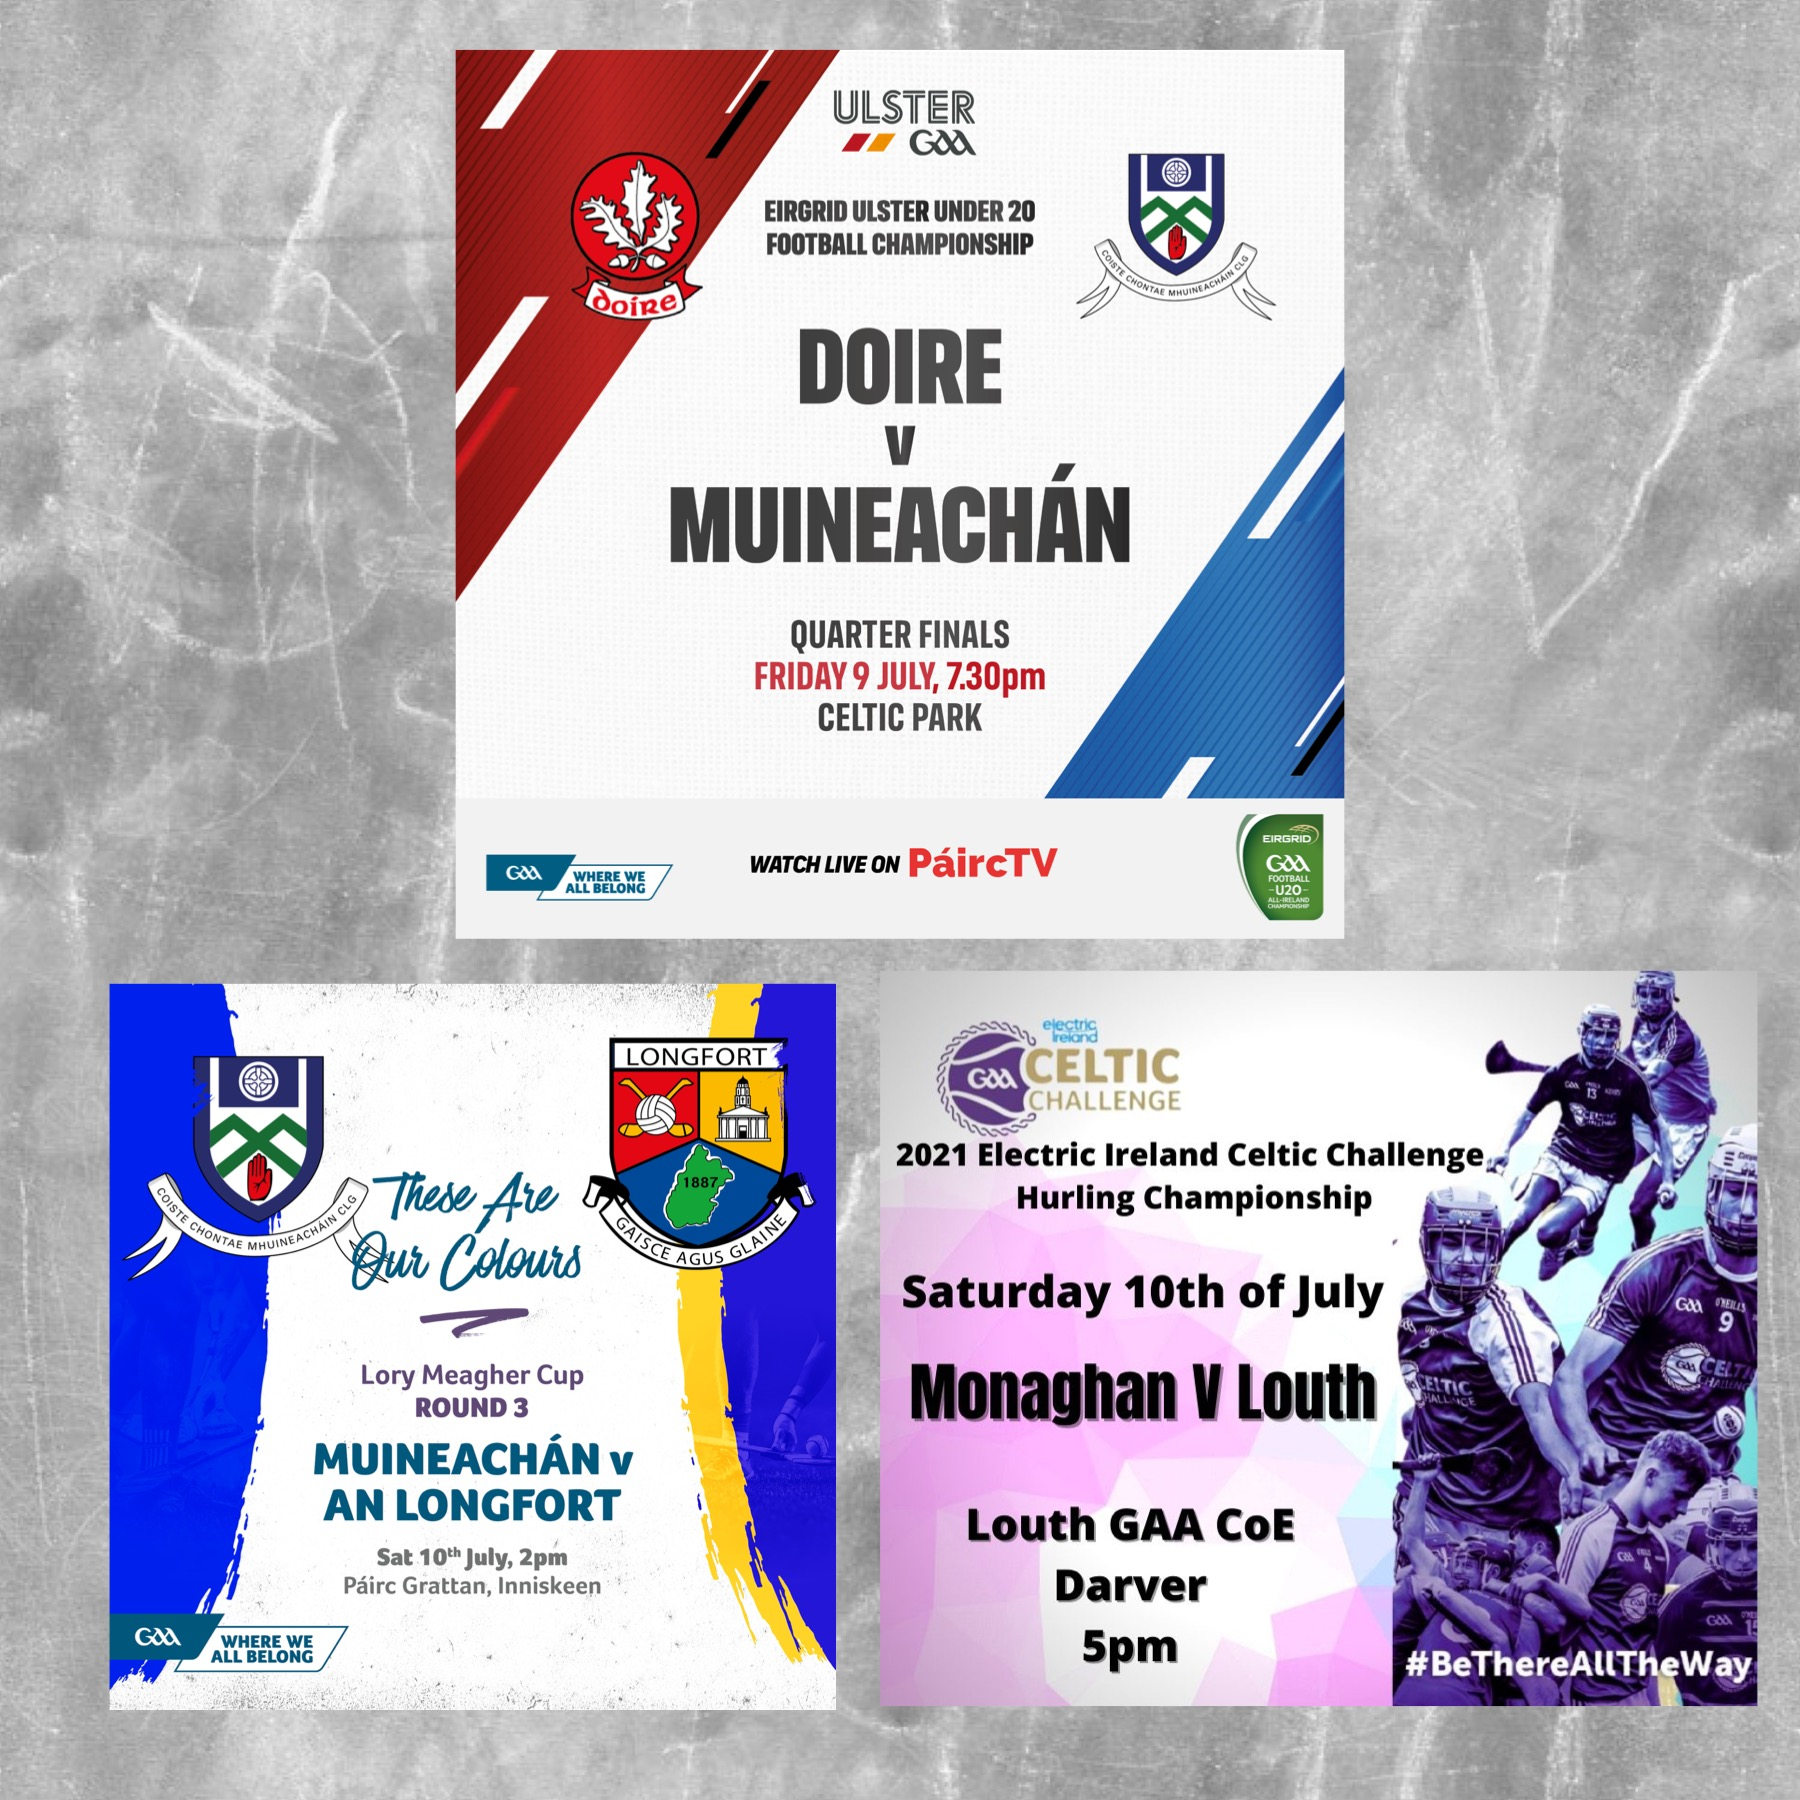 Another Action Packed Weekend of Monaghan GAA Football & Hurling